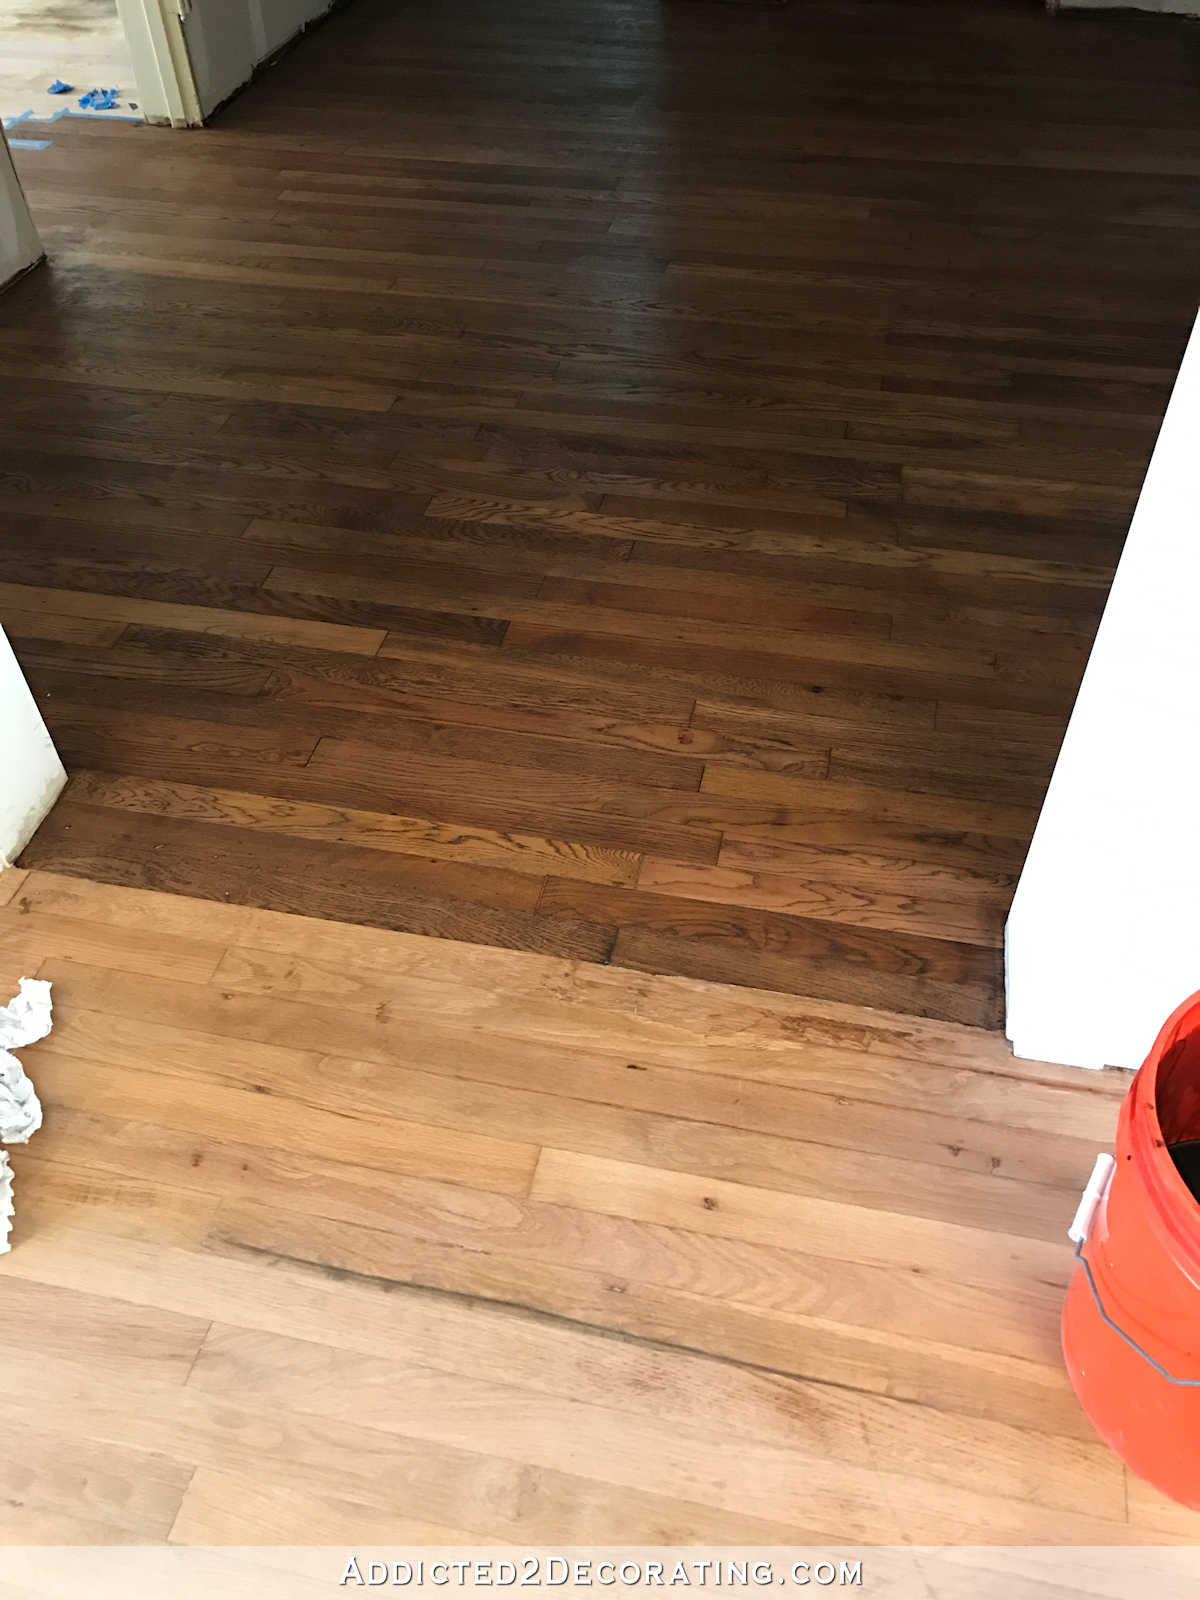 Can You Stain Hardwood Floors A Different Color Of Adventures In Staining My Red Oak Hardwood Floors Products Process with Regard to Staining Red Oak Hardwood Floors 2 Tape Off One Section at A Time for